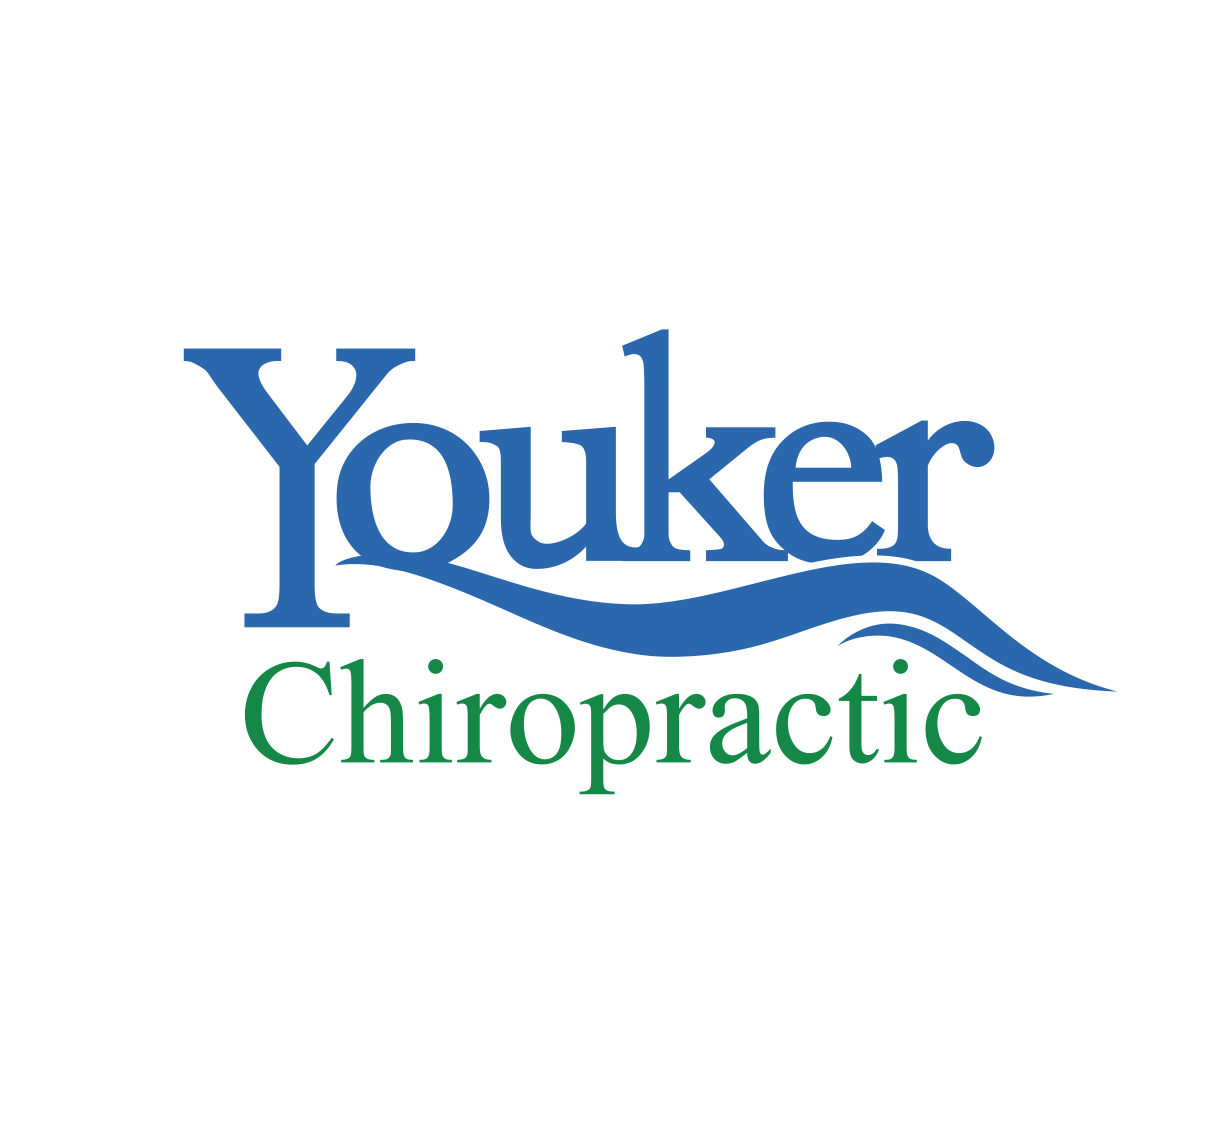 Youker Chiropractic